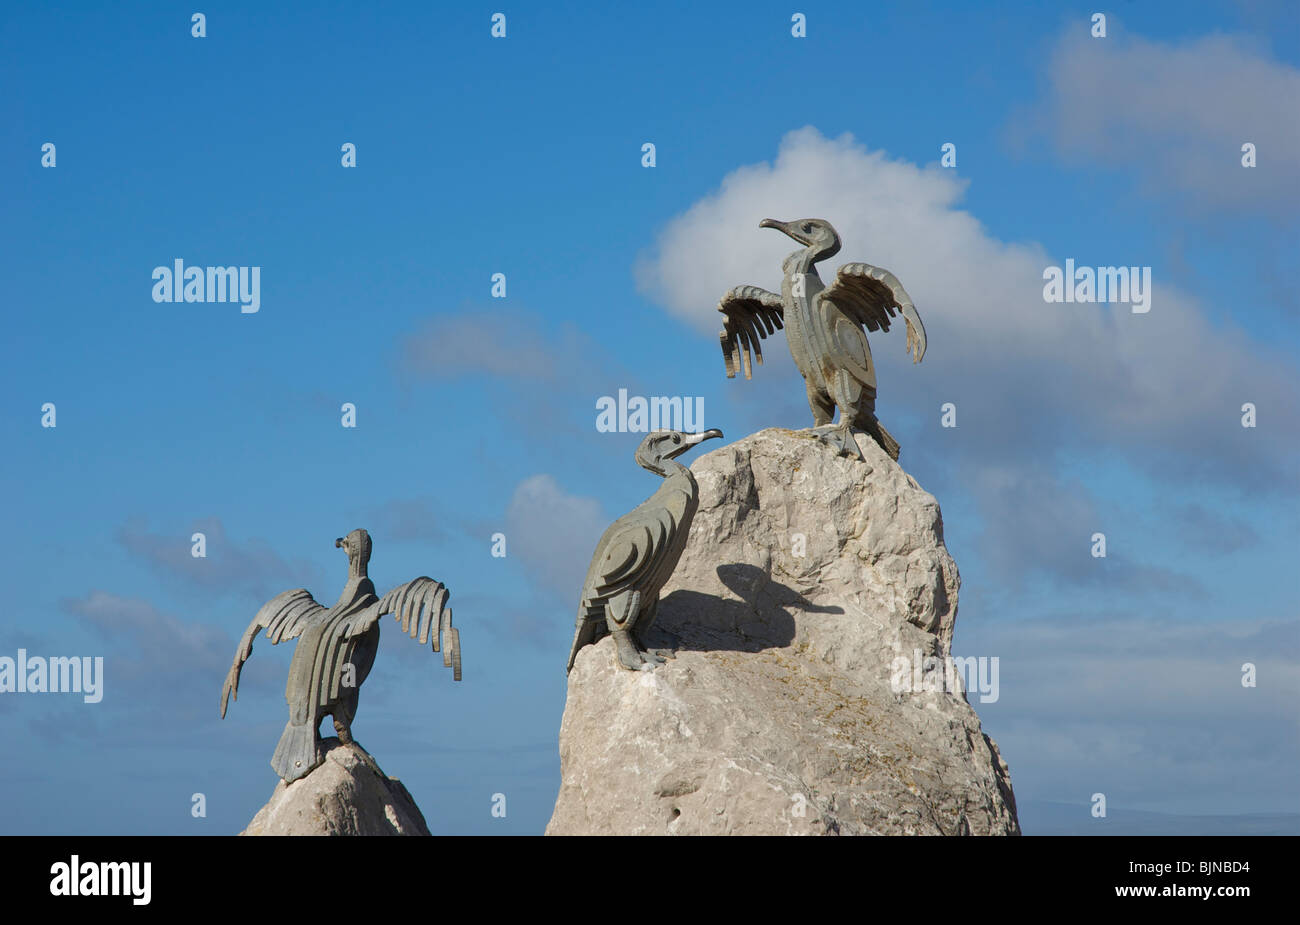 Sculpture of cormorants on promenade, Morecambe, Lancashire, England UK - Stock Image